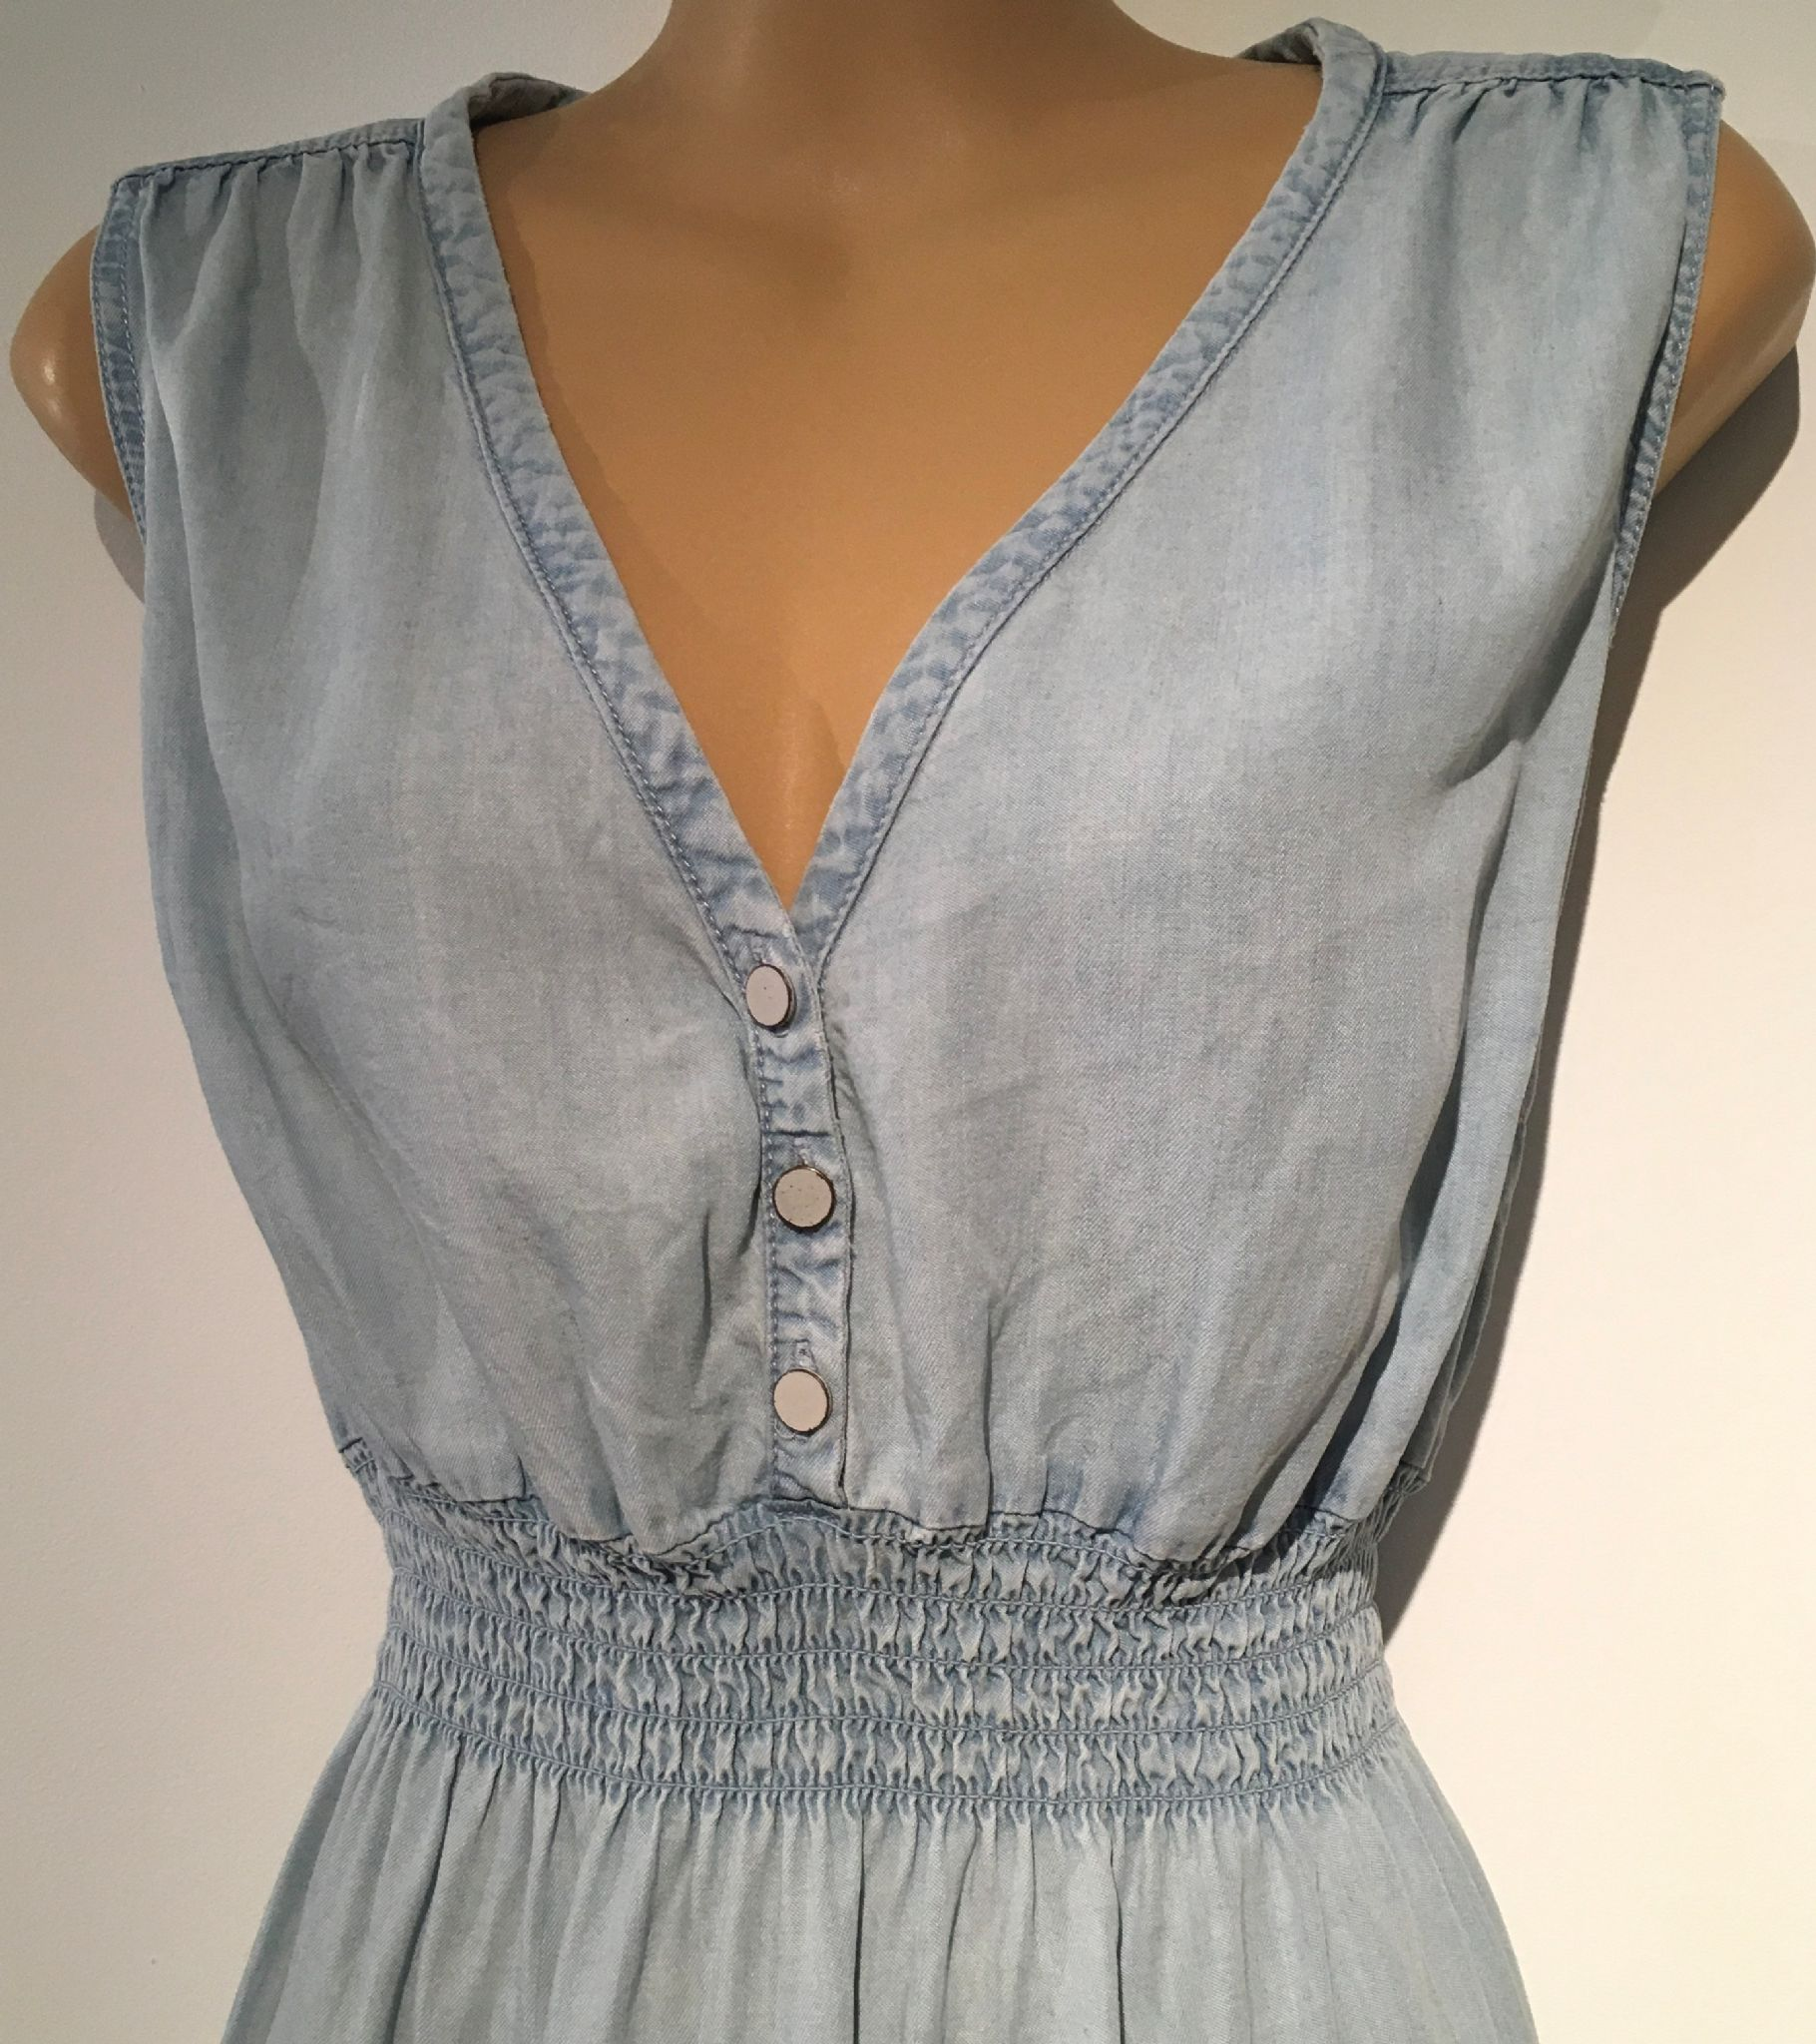 3dc8b4157fa1d H&M MAMA DENIM SLEEVELESS KNEE LENGTH DRESS SIZE M 12